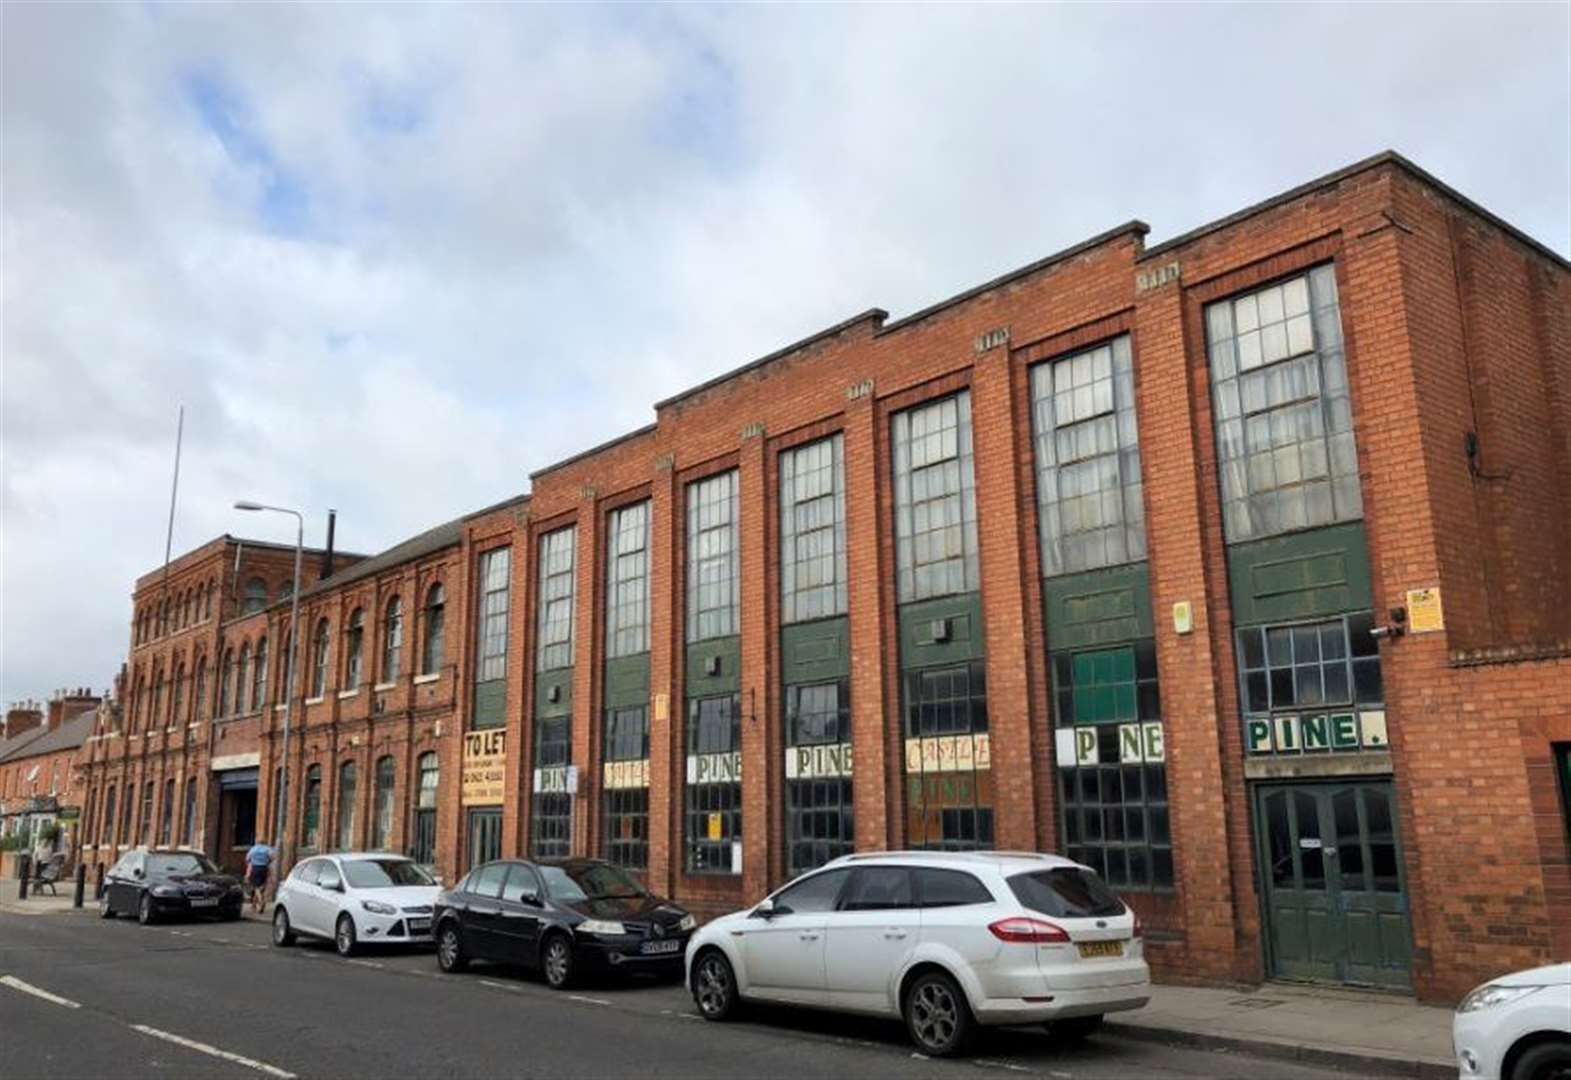 Estate agents to sell town centre warehouse for £1.5m